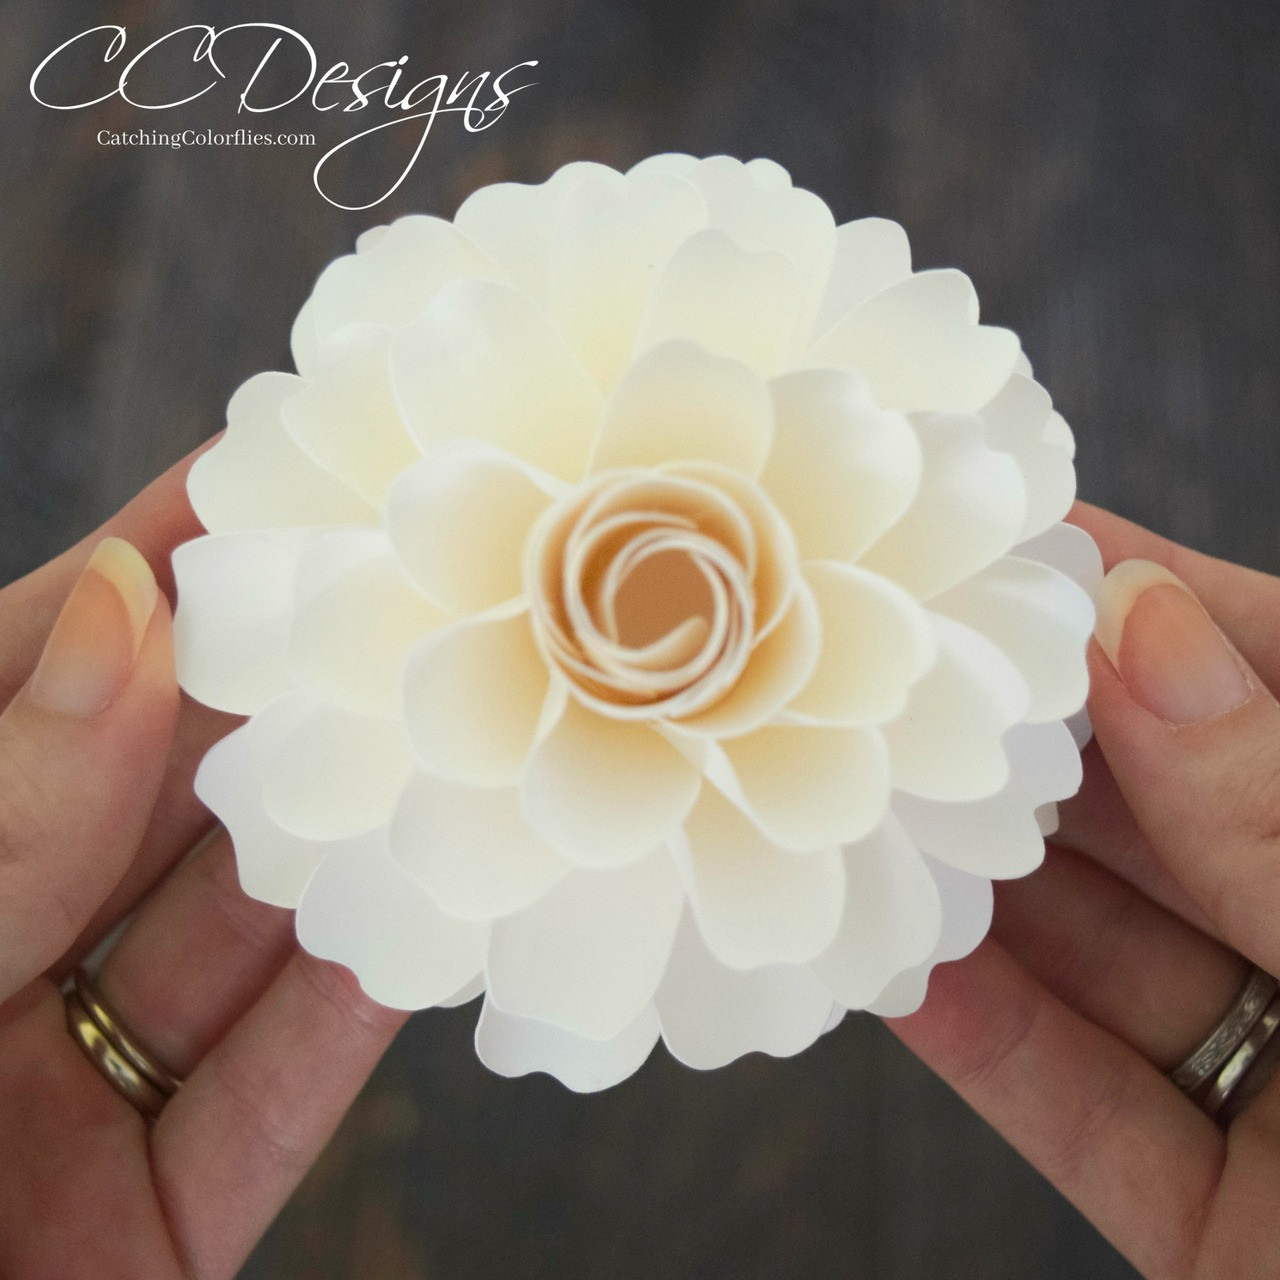 Dahlia paper flower templates catching colorflies mightylinksfo